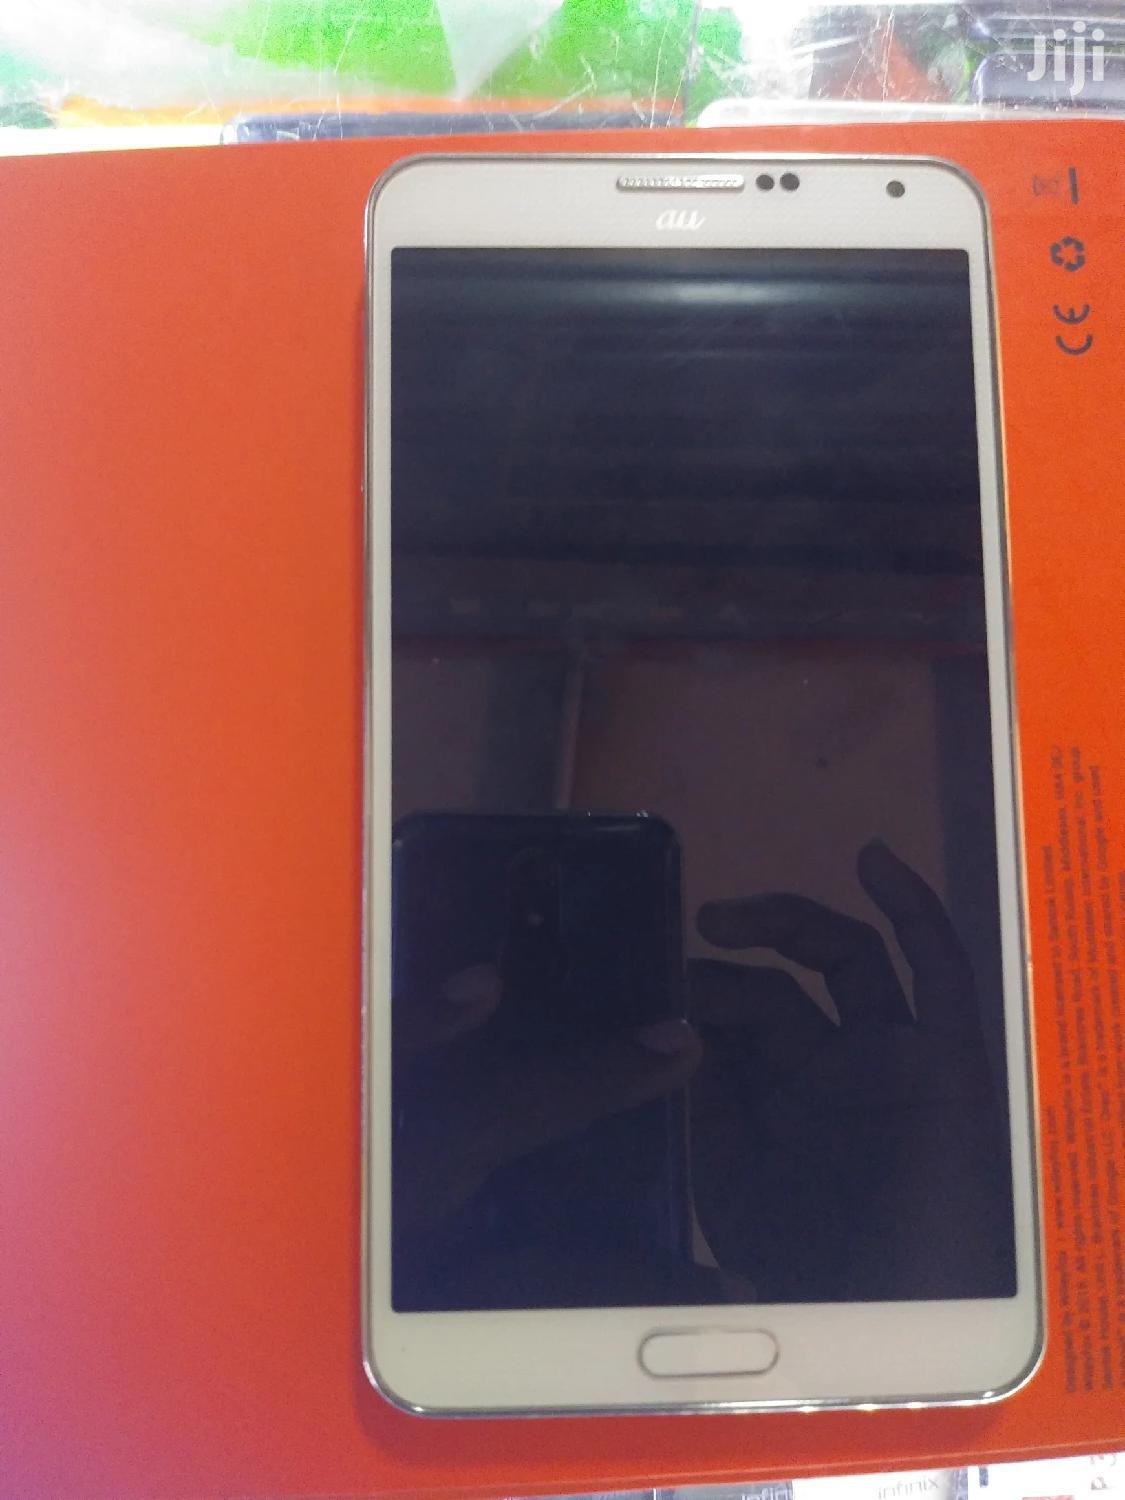 Samsung Galaxy Note 3 64 GB White | Mobile Phones for sale in Kampala, Central Region, Uganda